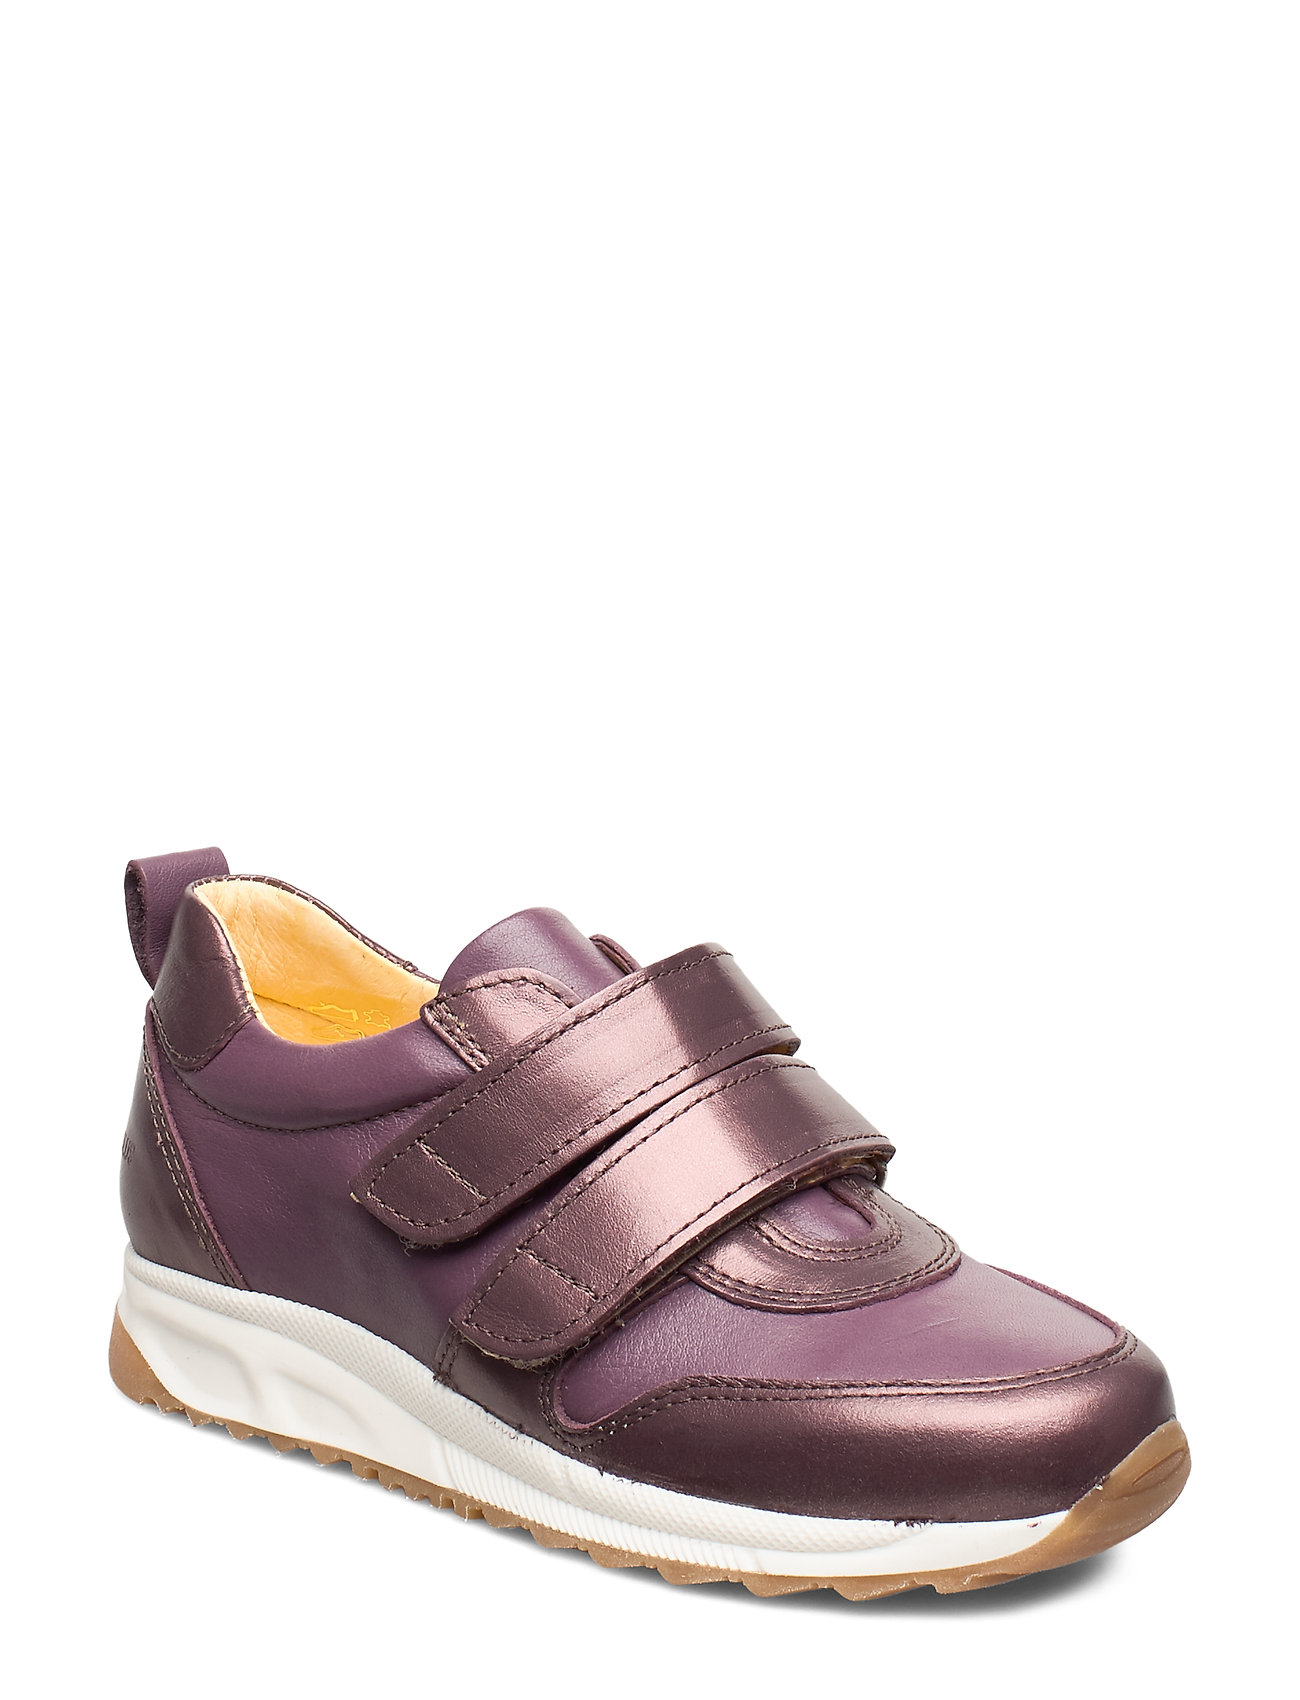 ANGULUS Shoes - flat - with velcro - 1309/1568 LAVENDER SHINE/LAVEN